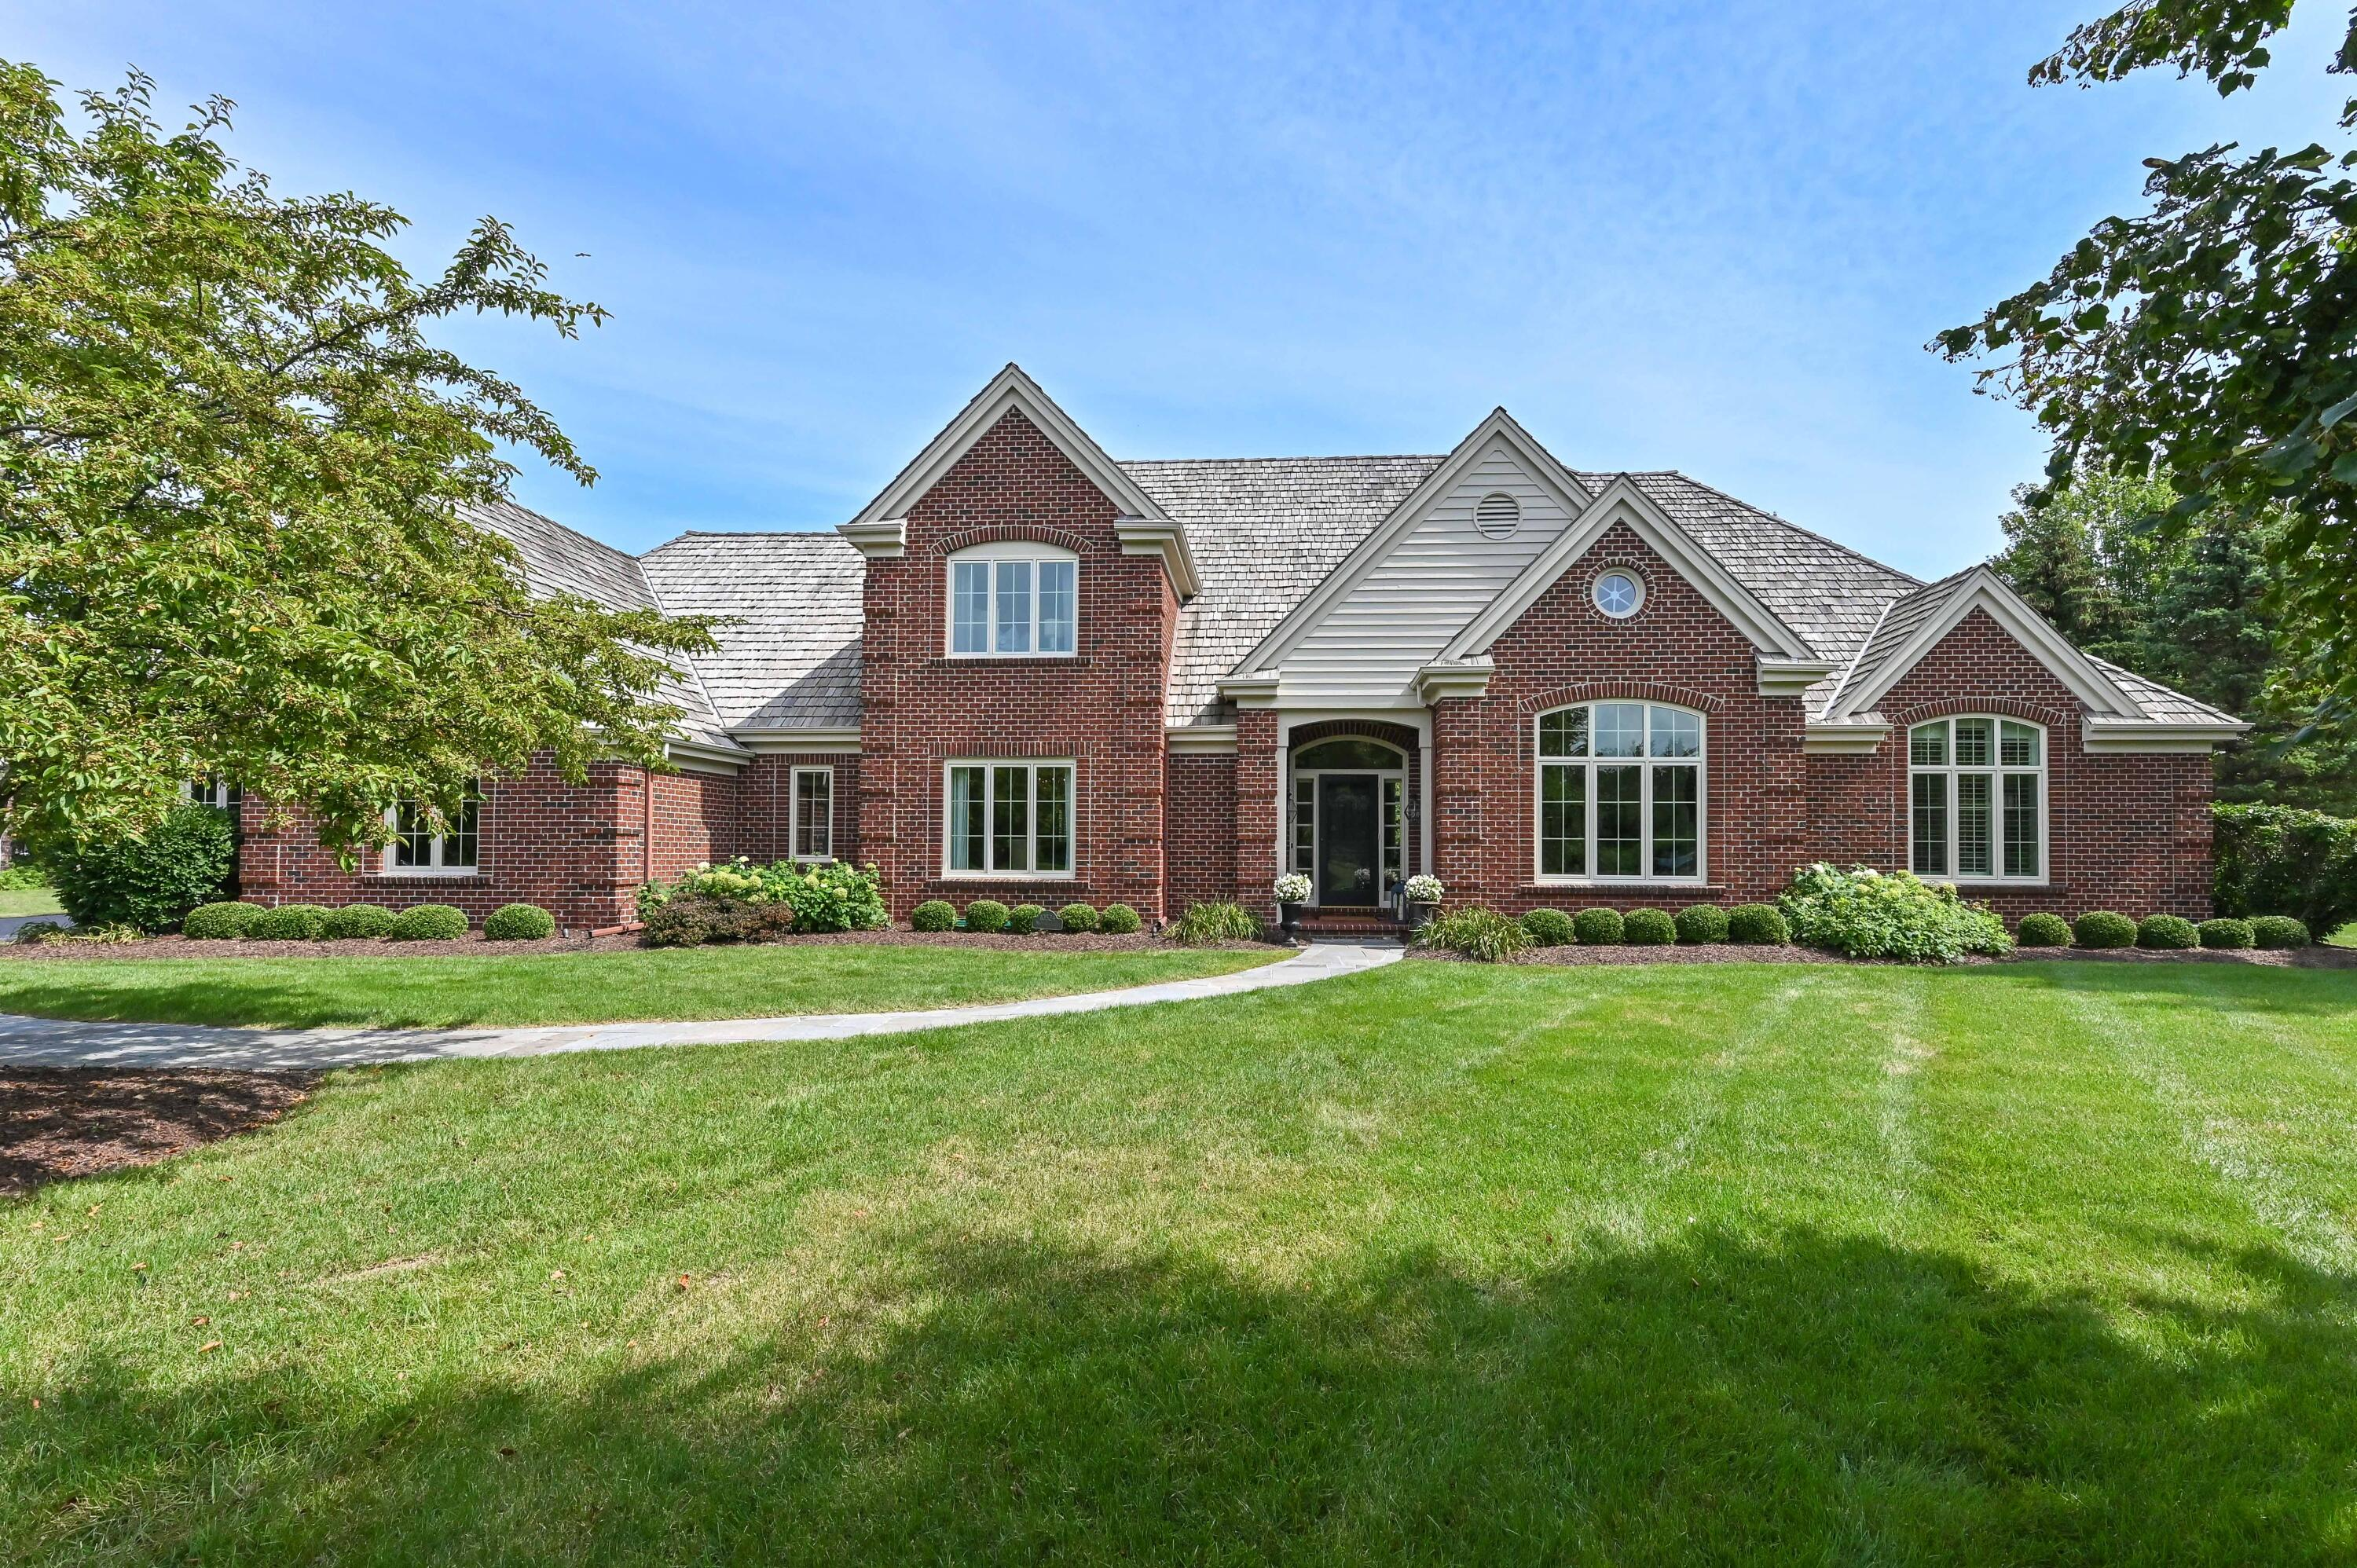 10524 N Wood Crest Dr, Mequon, WI 53092